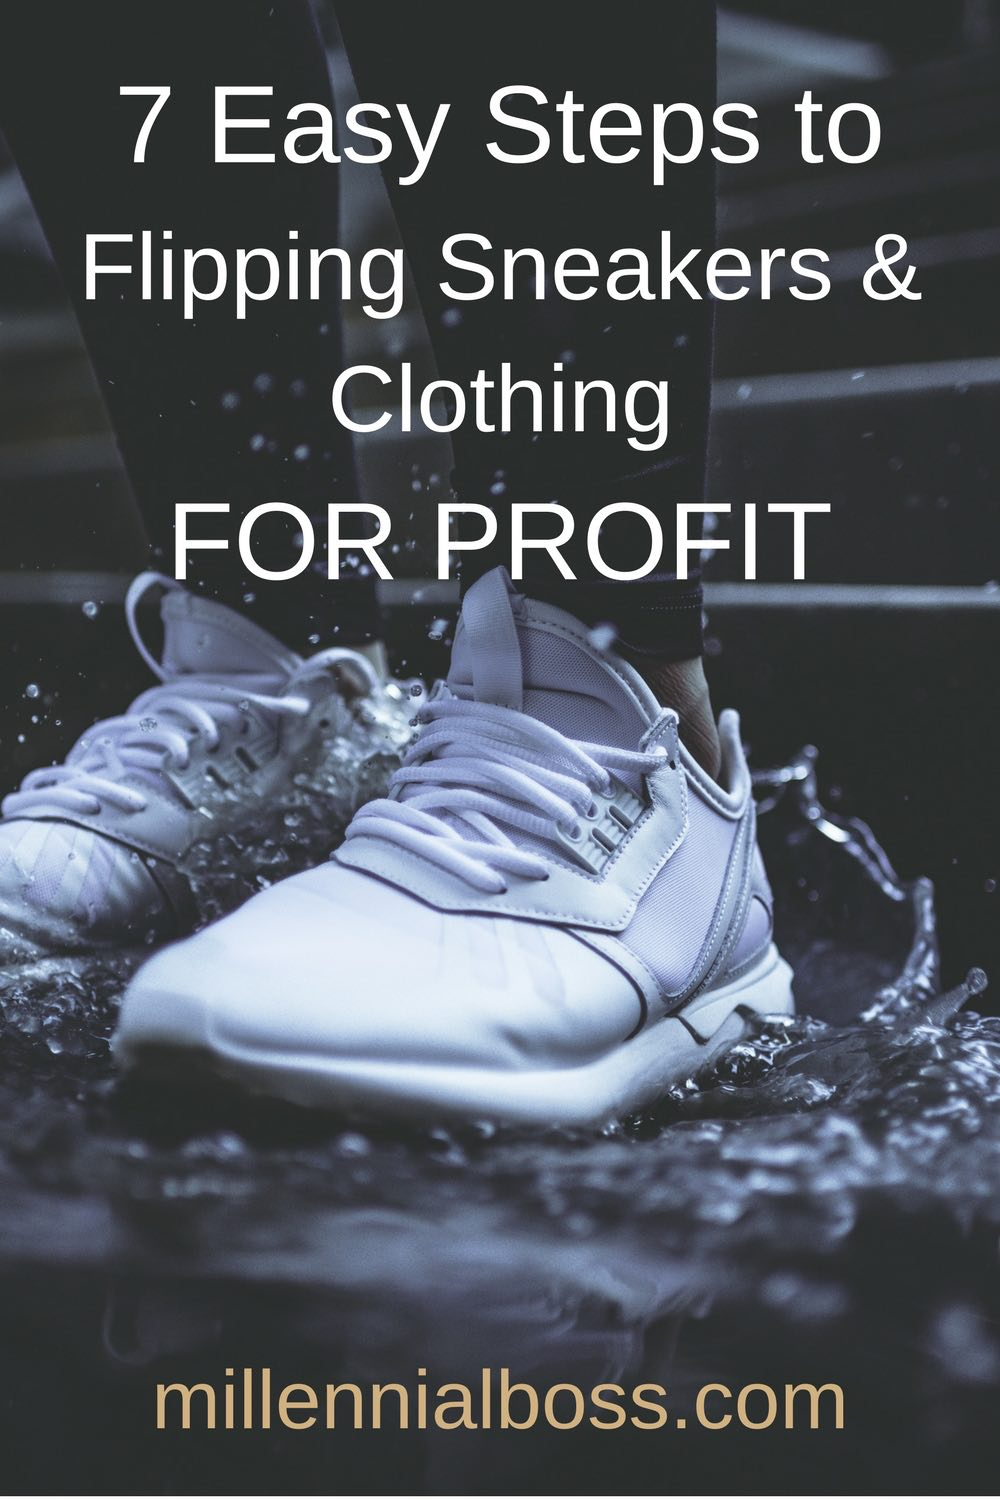 10041ea259 How to Triple Your Money Reselling Hot Sneakers and Clothing ...